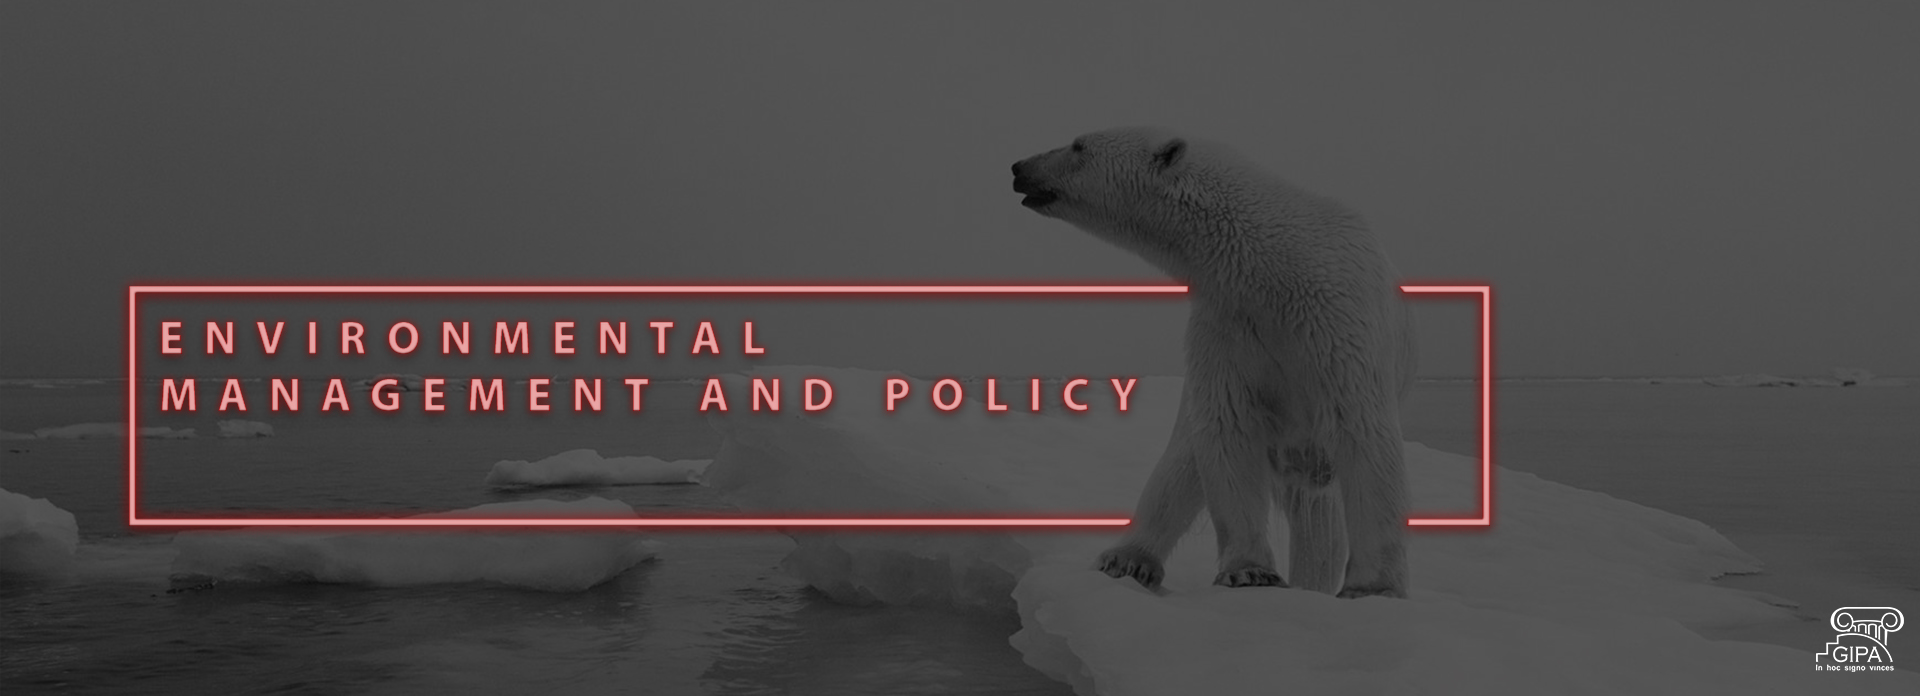 Environmental management and policy